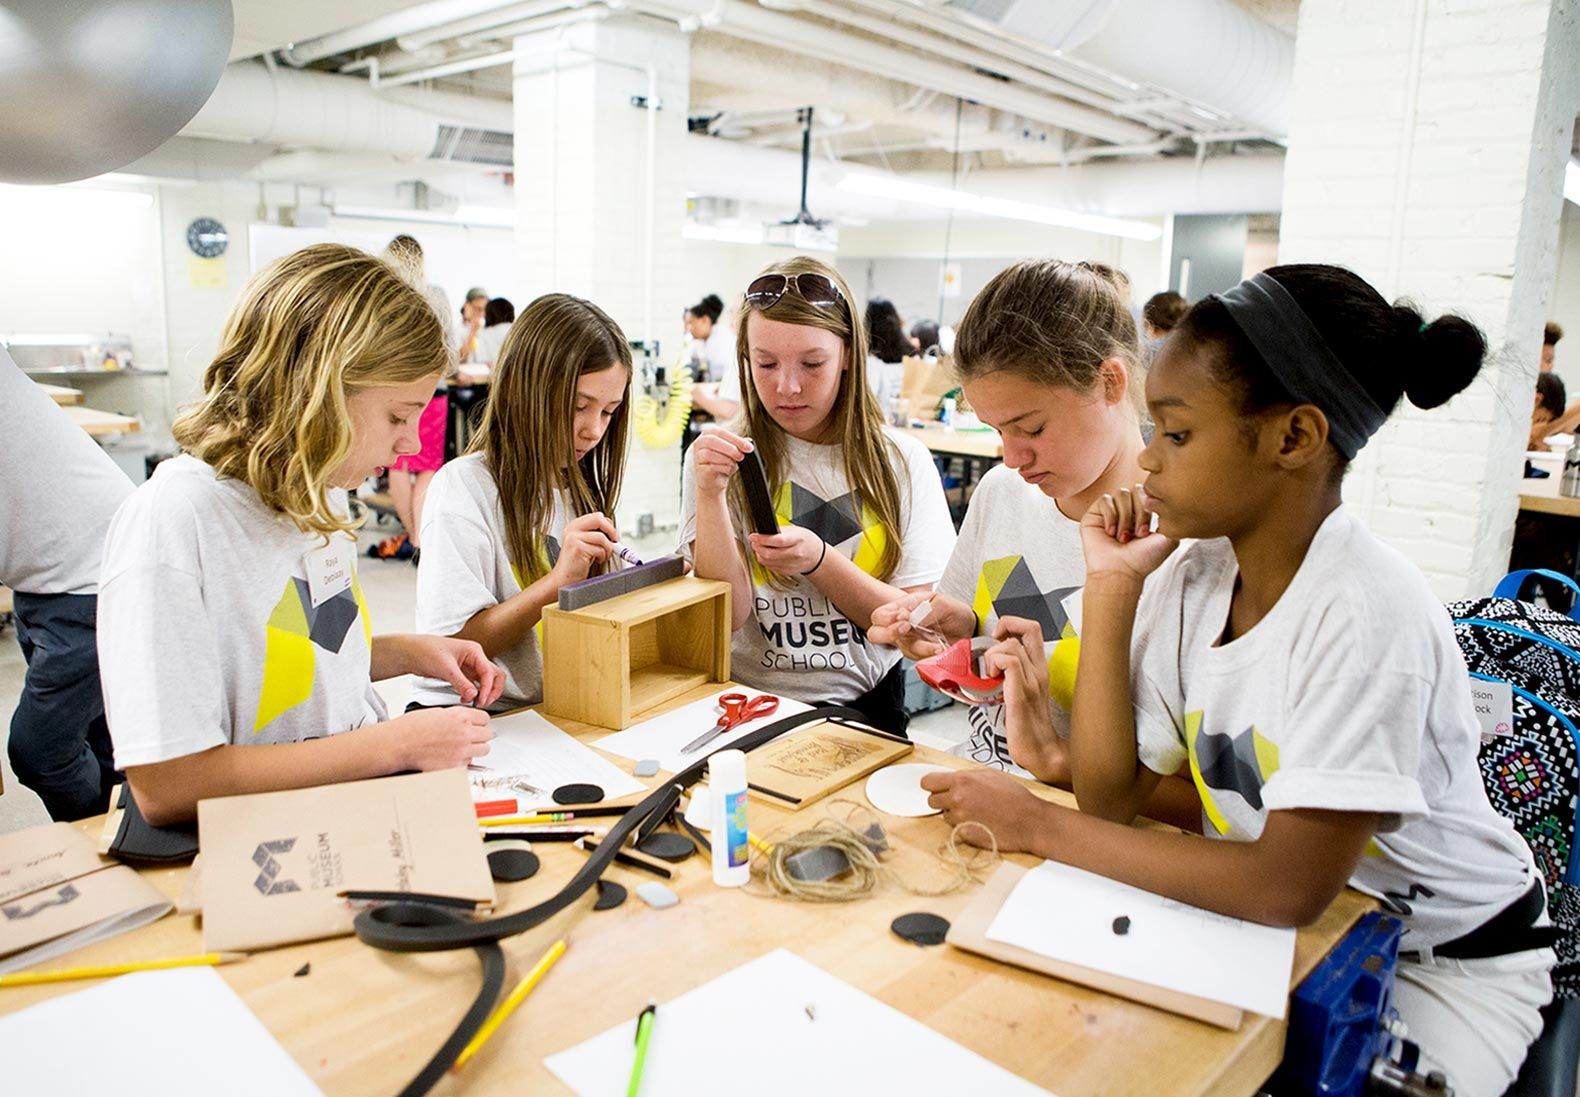 Students traveled to the Kendall College of Art and Design, part of the school's network of partners, to work on a design-thinking challenge.